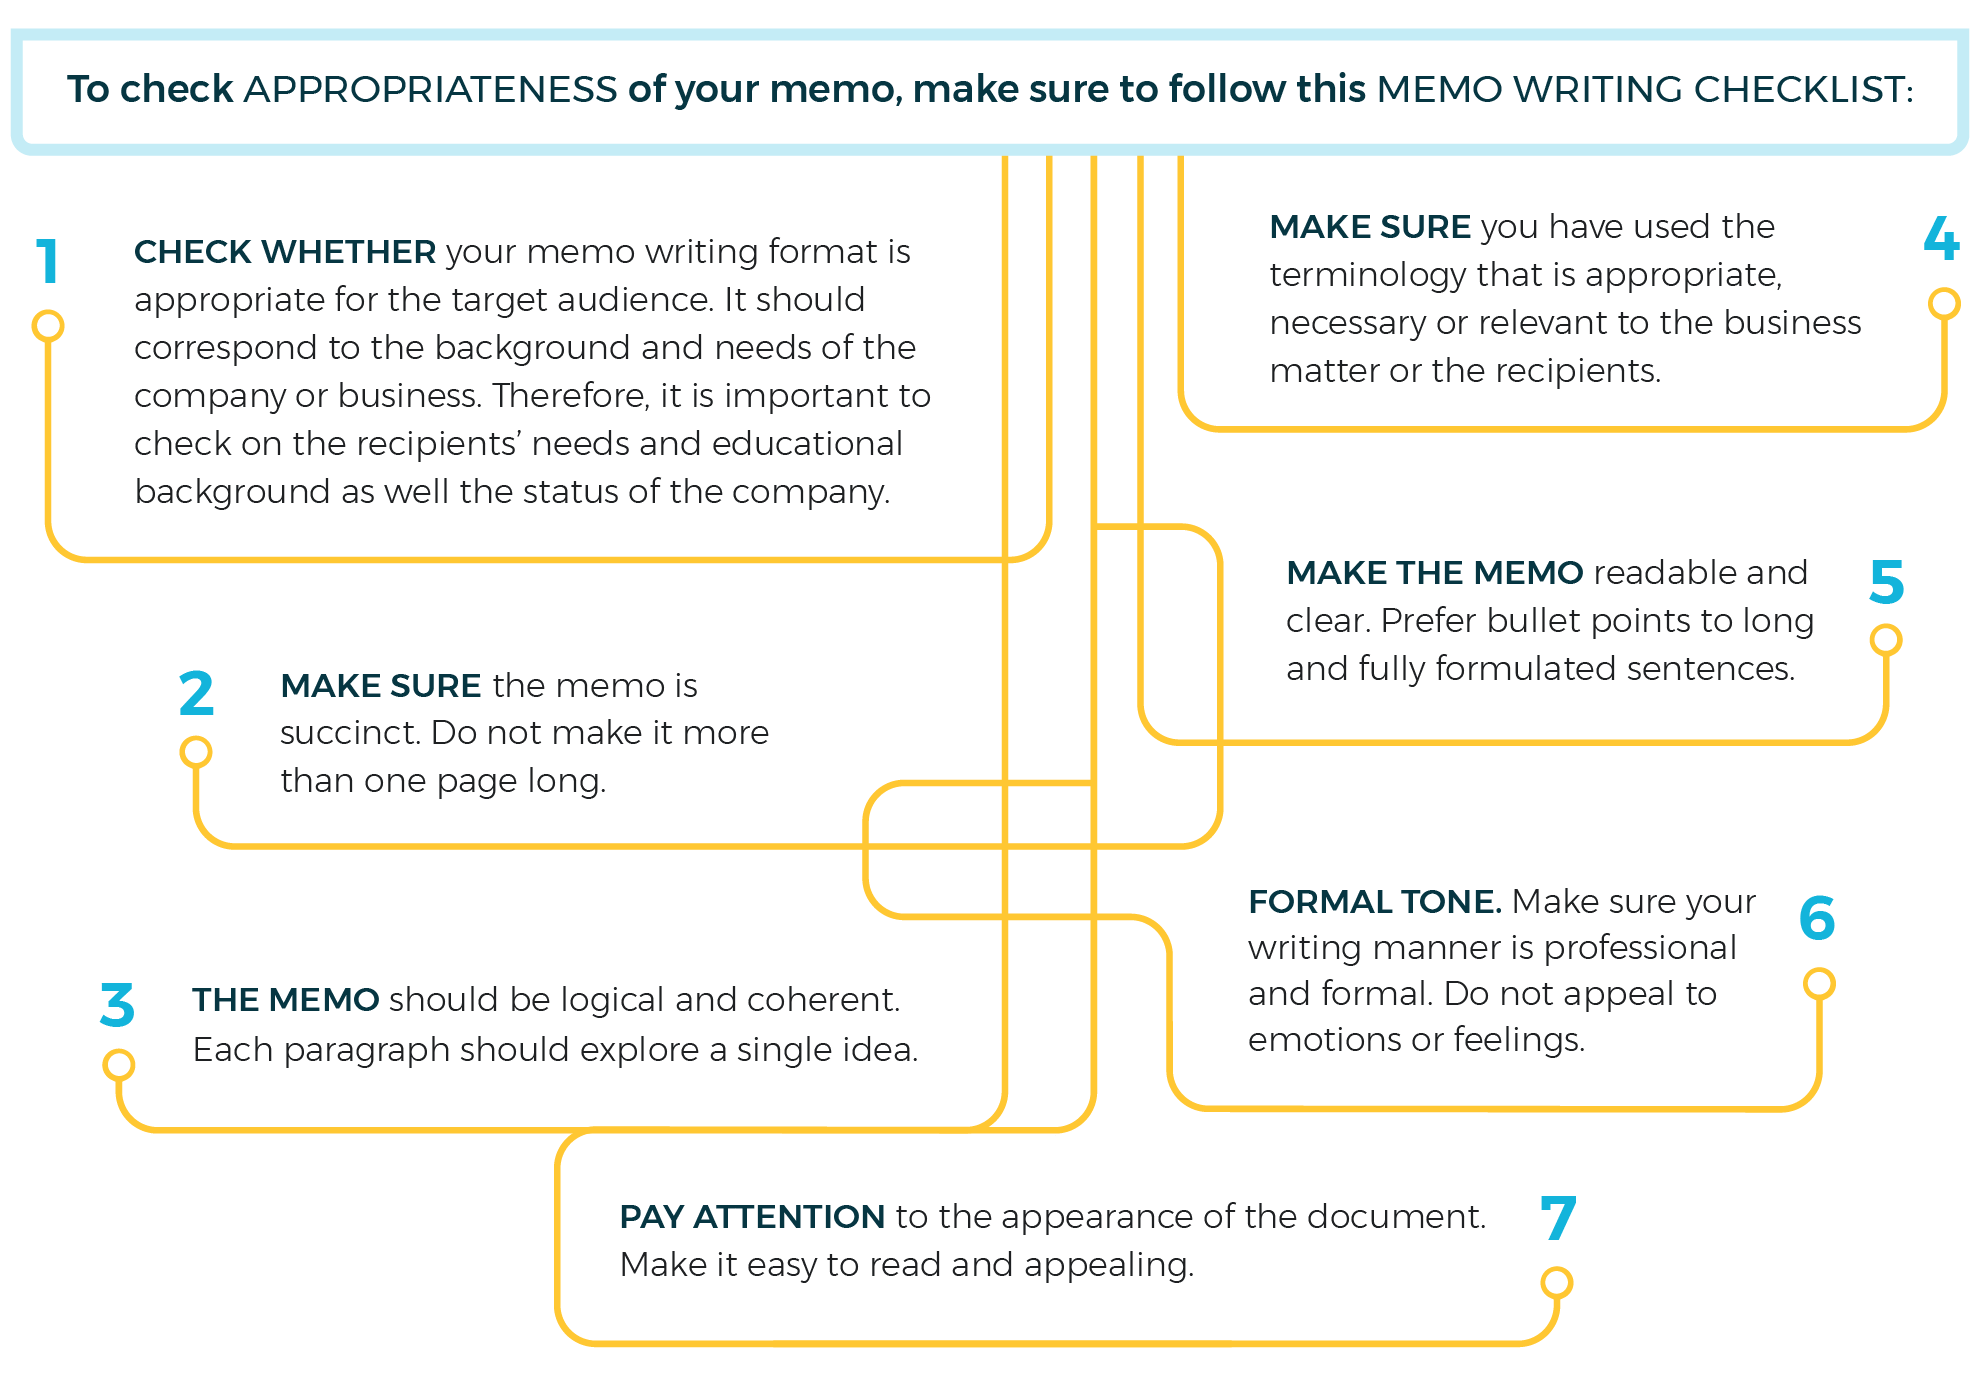 To check appropriateness of your memo, make sure to follow this memo writing checklist